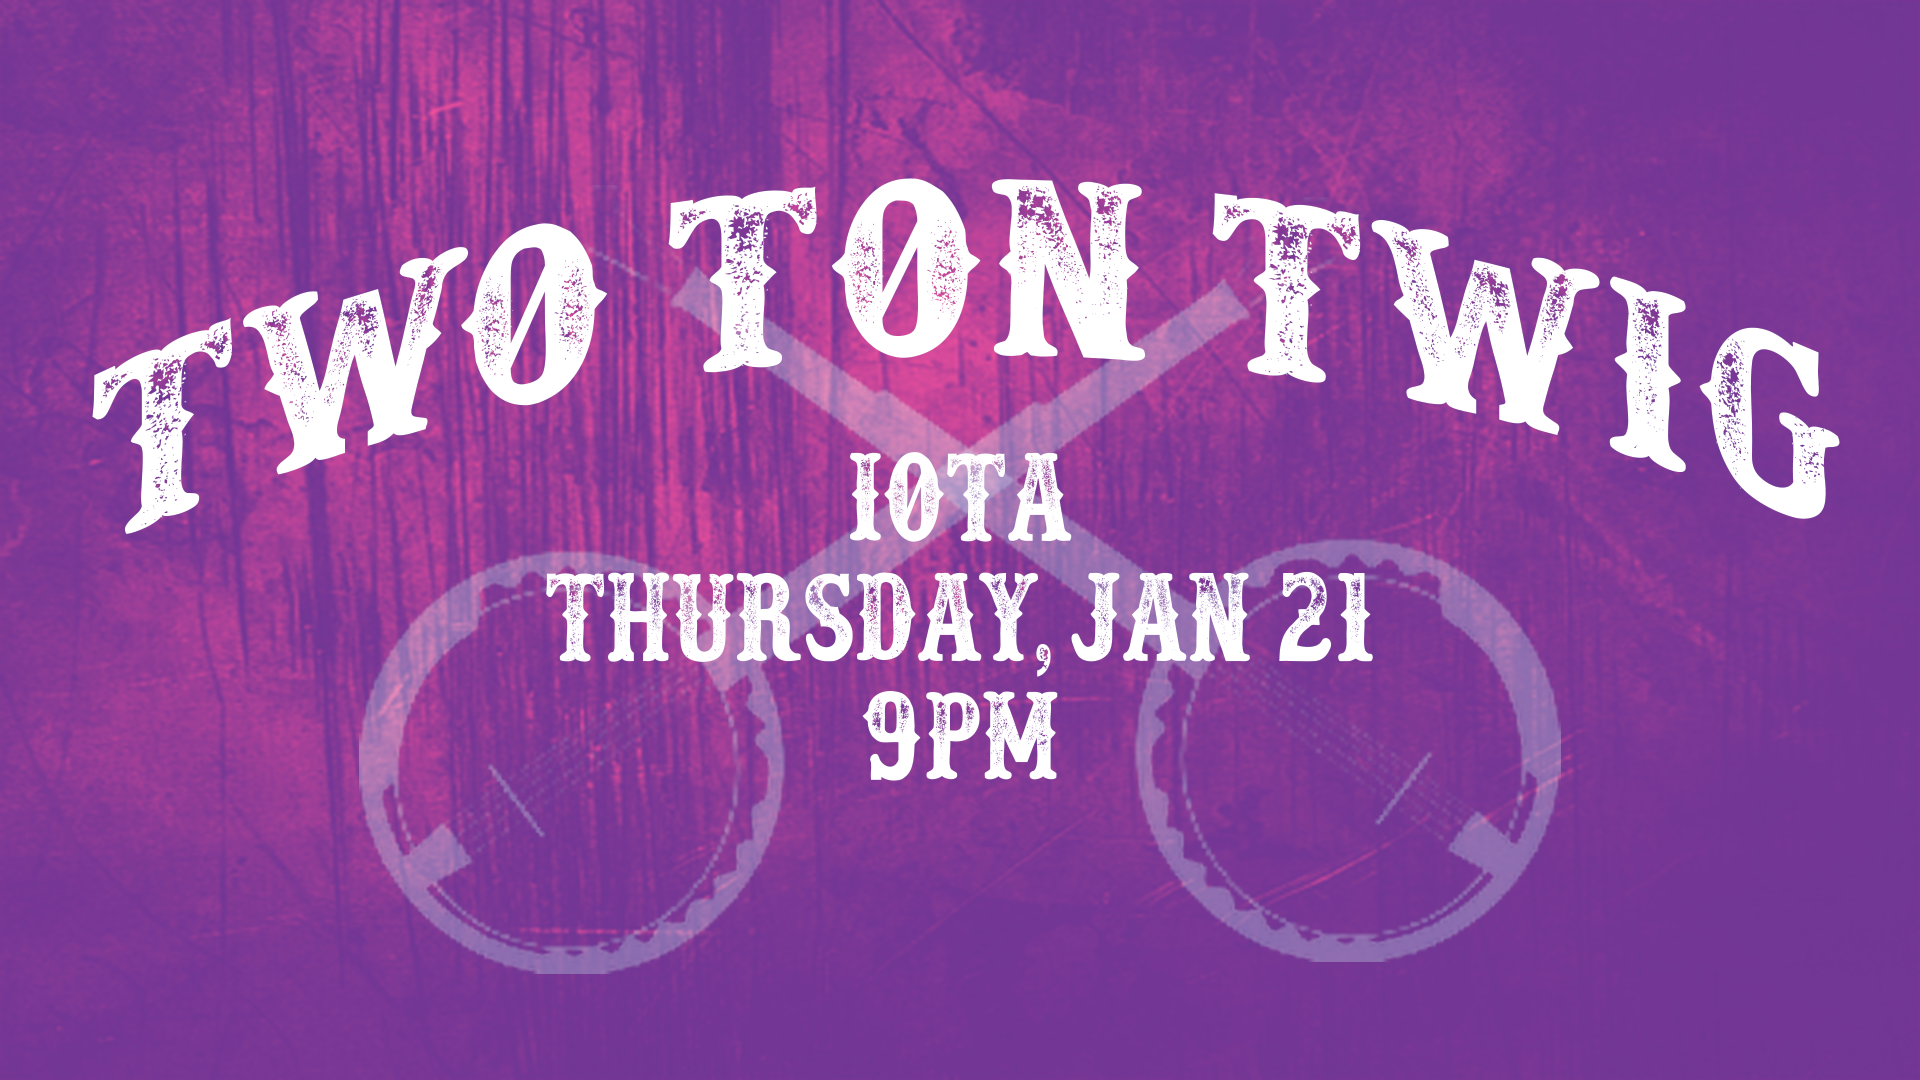 twig fb event - iota 1-21.png